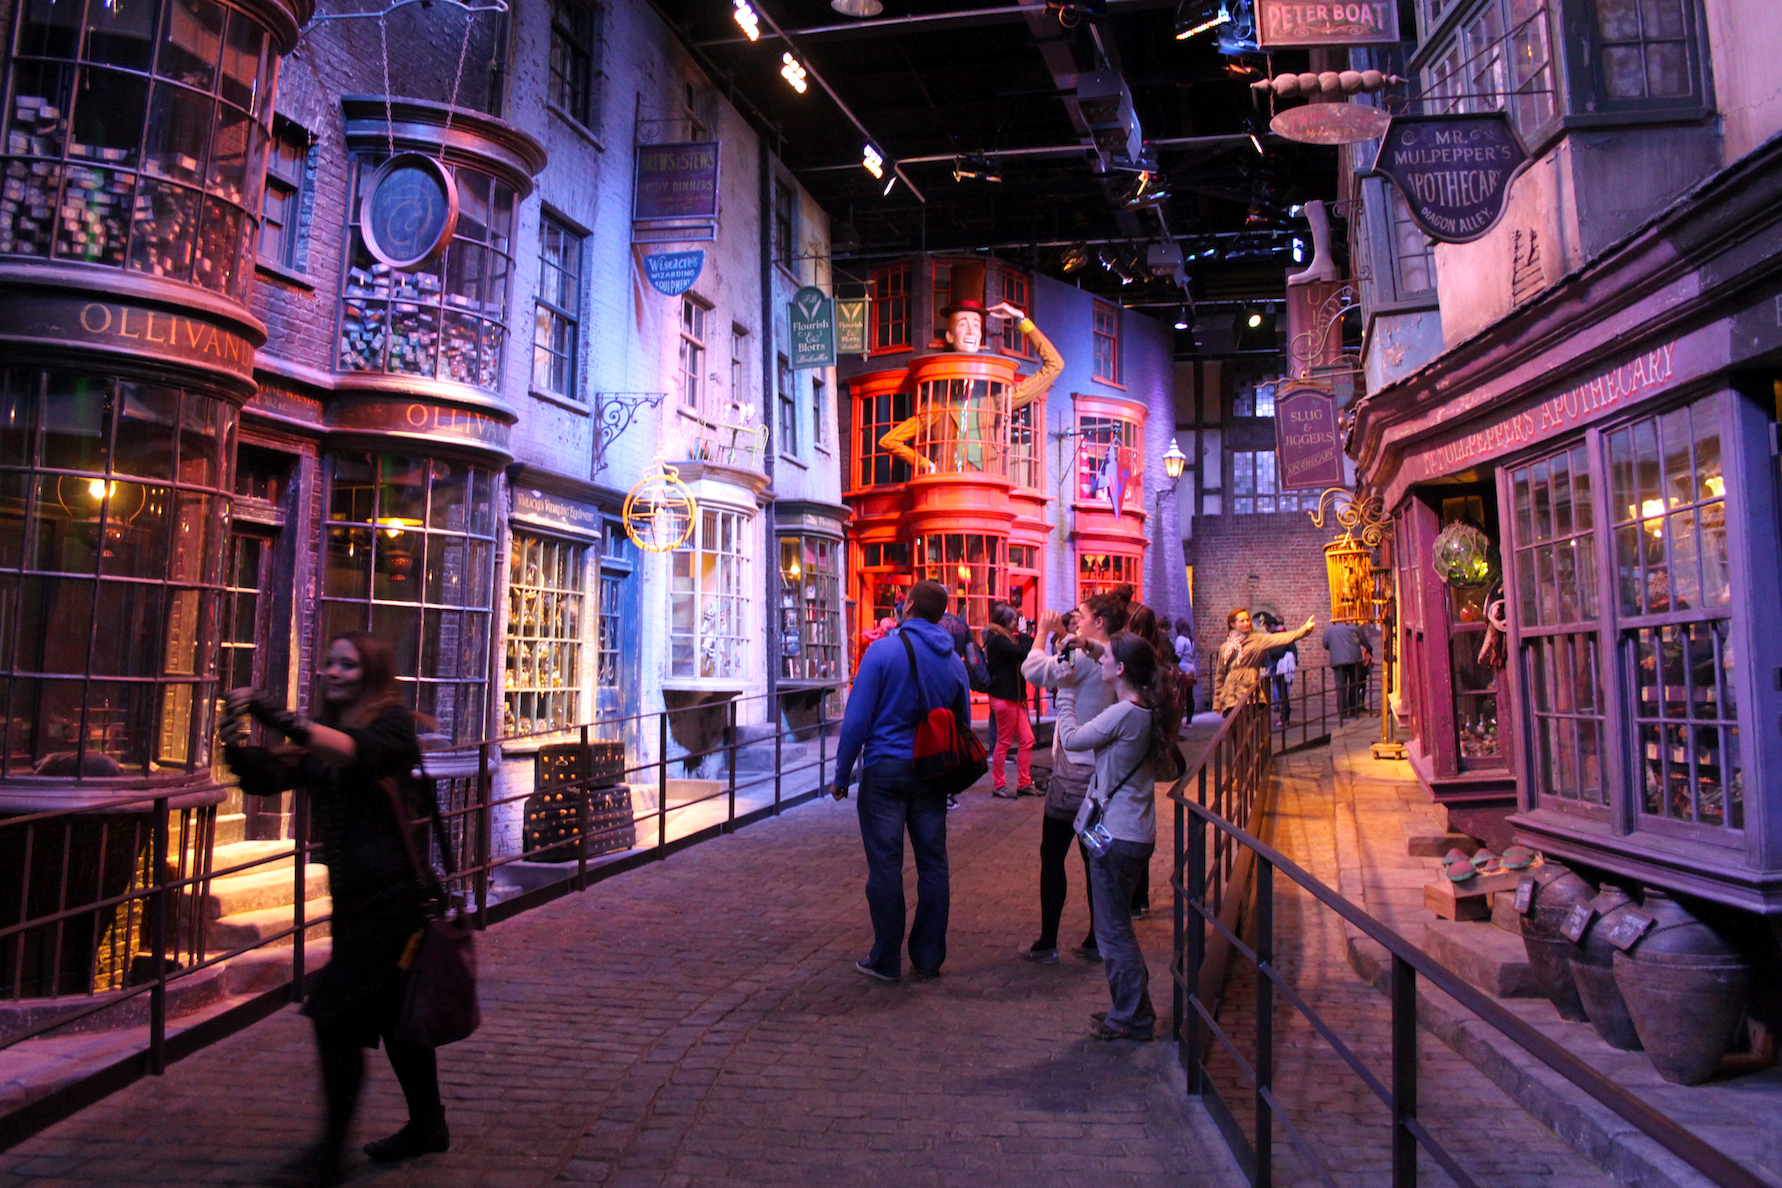 The Warner Bros. Harry Potter Studio Tour is a 5* attraction that all Potter fans must visit at least once. It has a 5/5 Trip Advisor rating based on 33, reviews with a Certificate of Excellence Award.